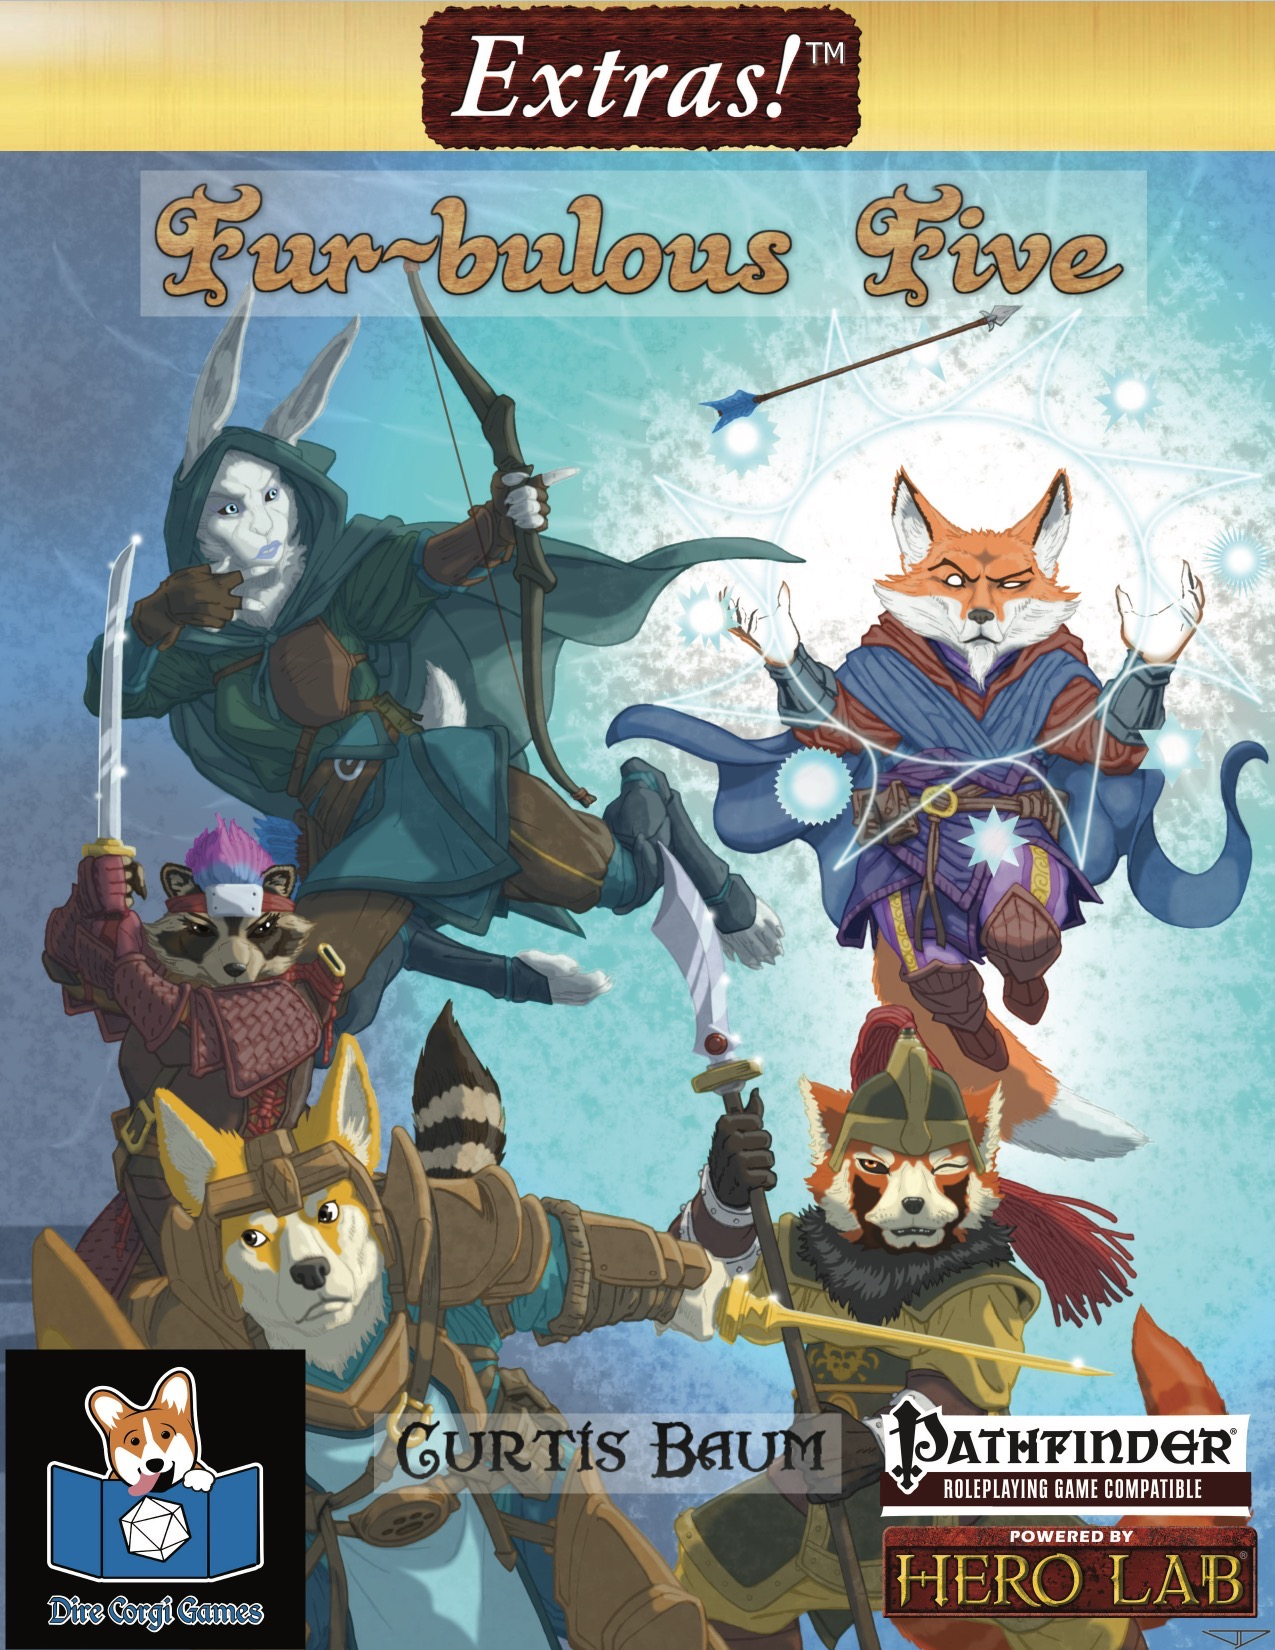 Fur-bulous Five: cover featuring animal based playable races including a rabit, fox, badger, red panda, and corgi